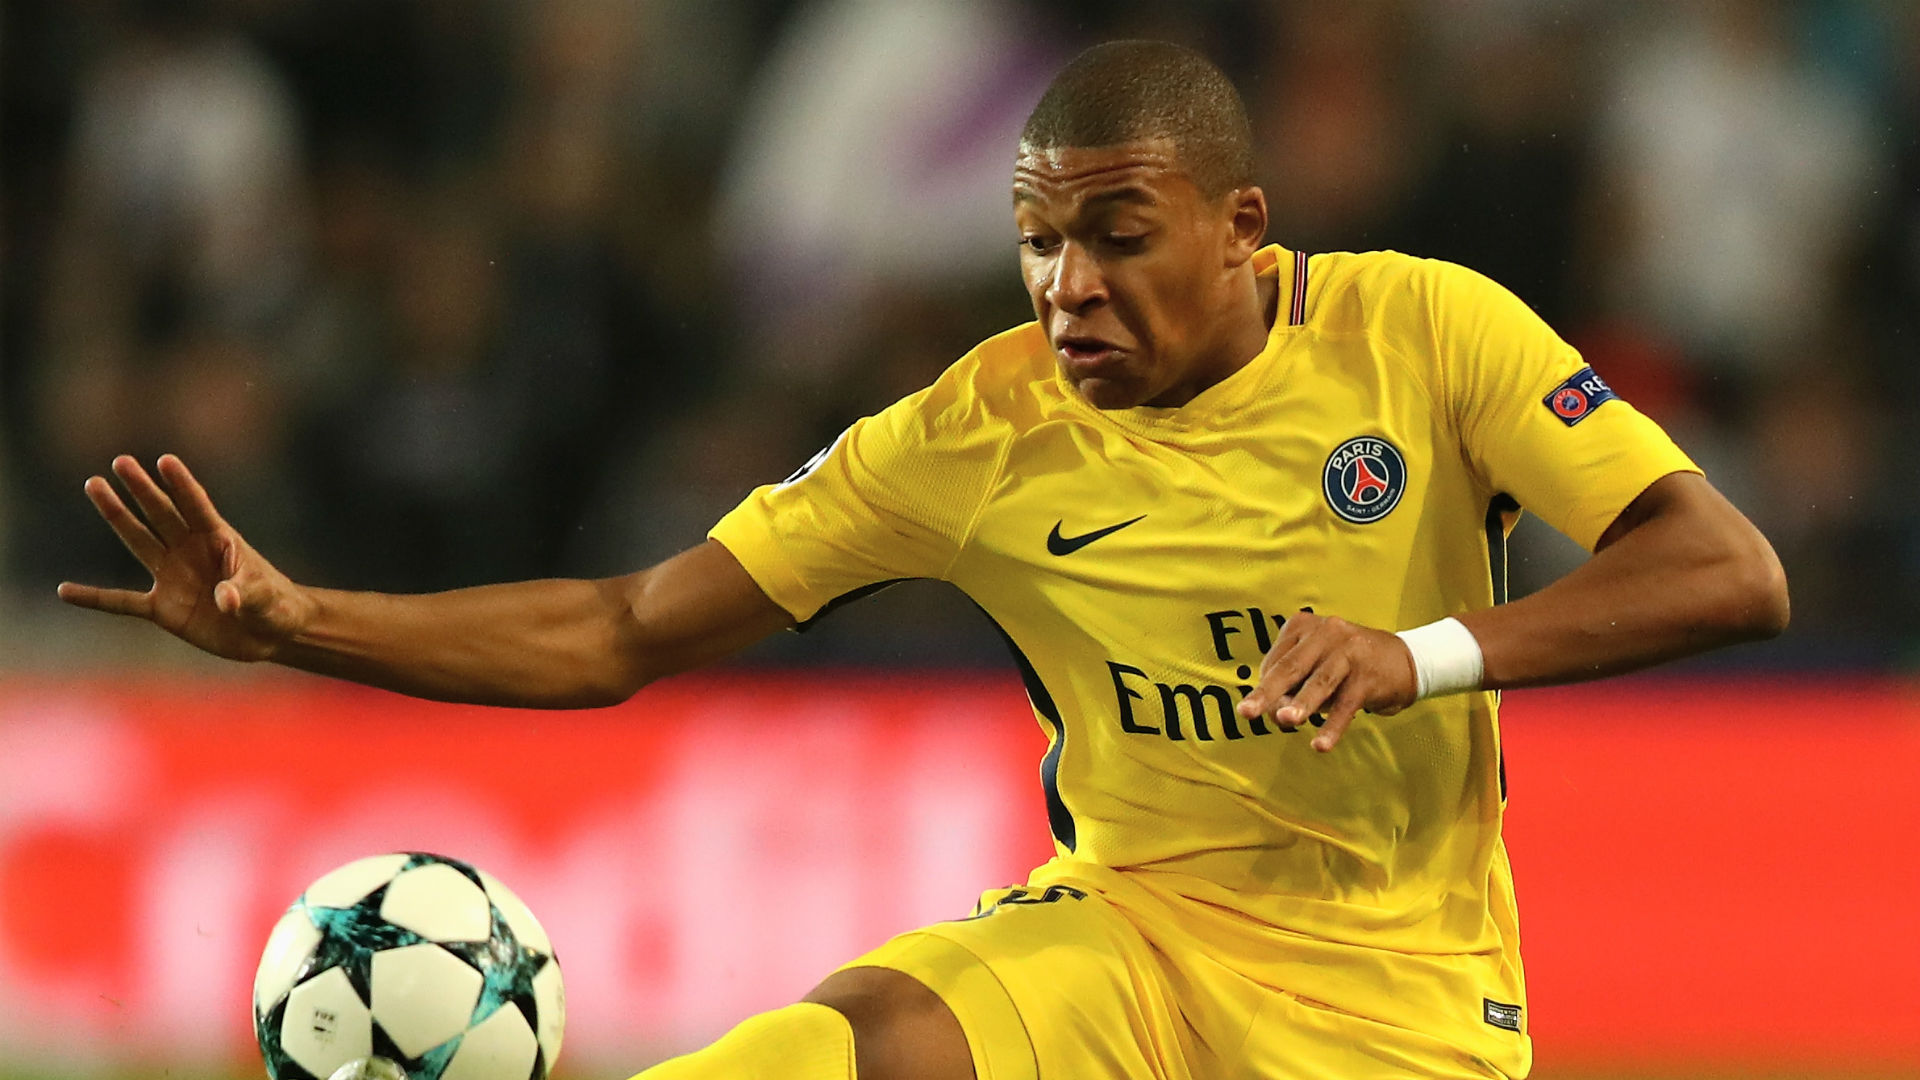 Champions League: The insane stats delivered by PARIS SAINT-GERMAIN